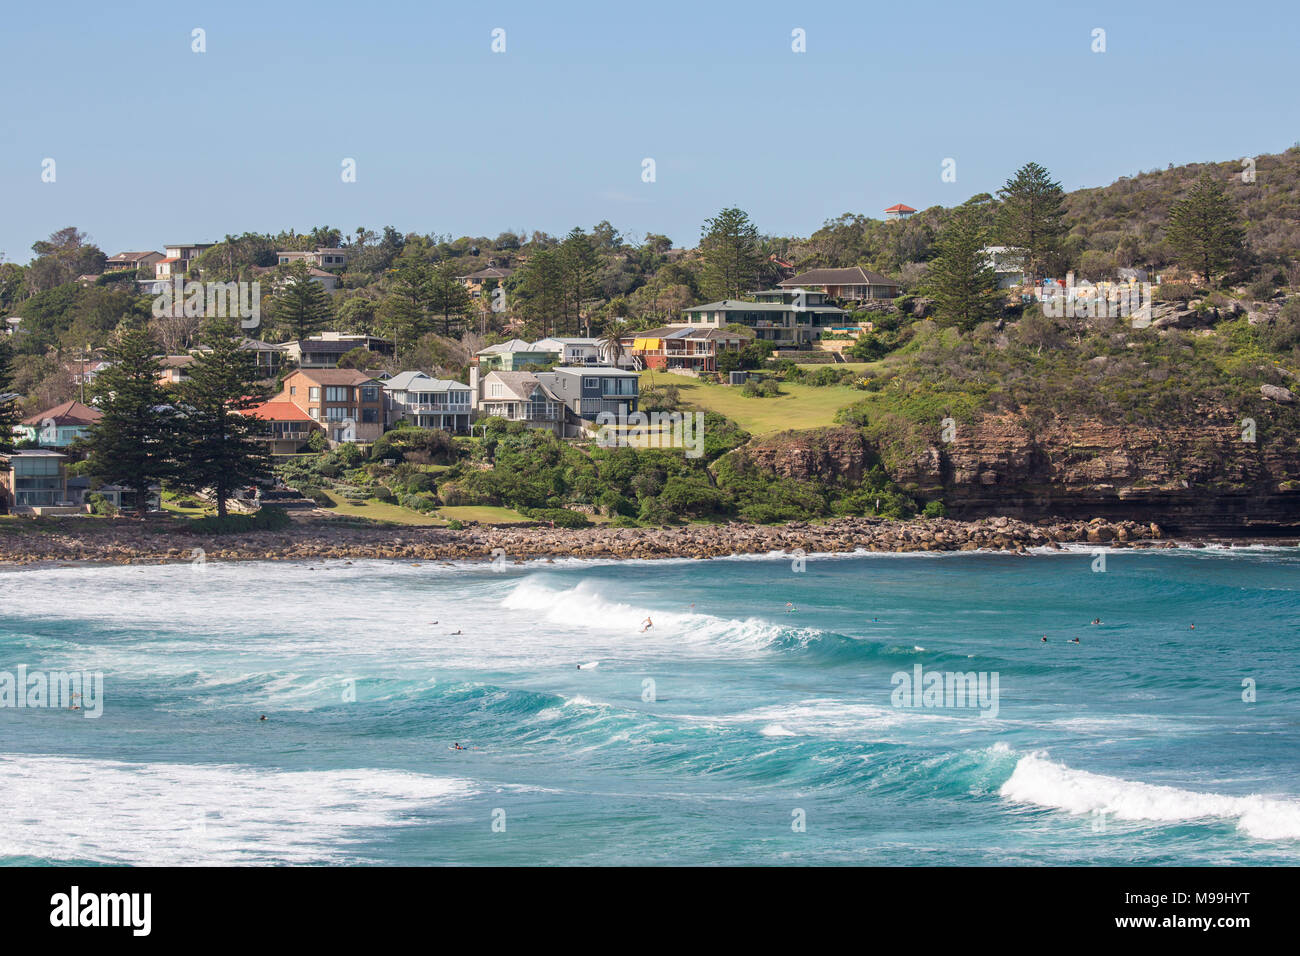 Waterfront Homes And Houses At Avalon Beach In Sydney Australia Stock Photo Alamy